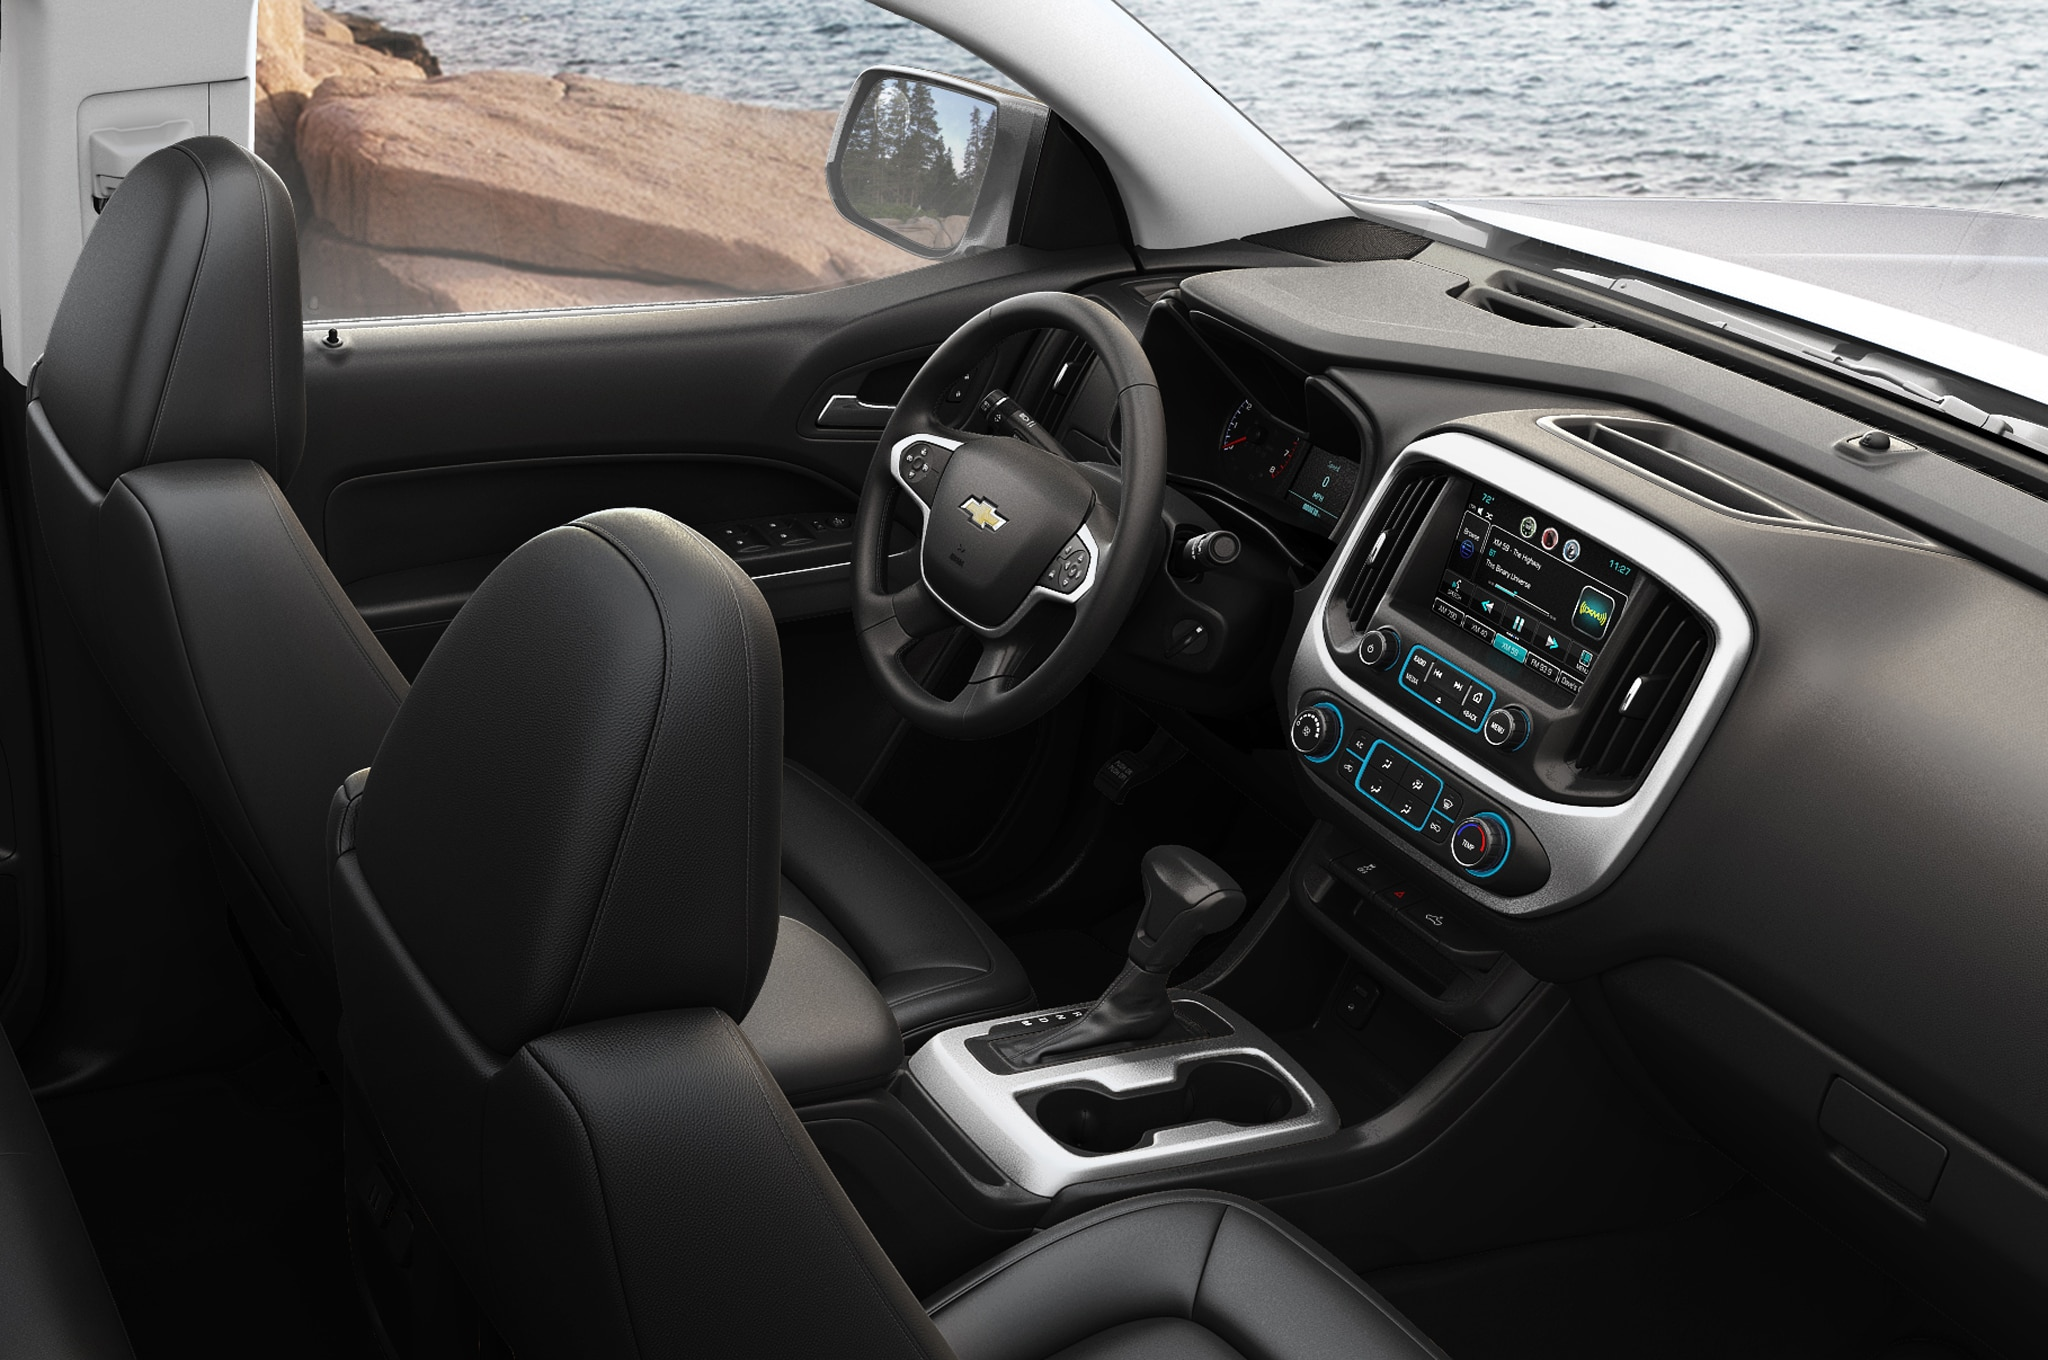 2015 Chevrolet Colorado front interior